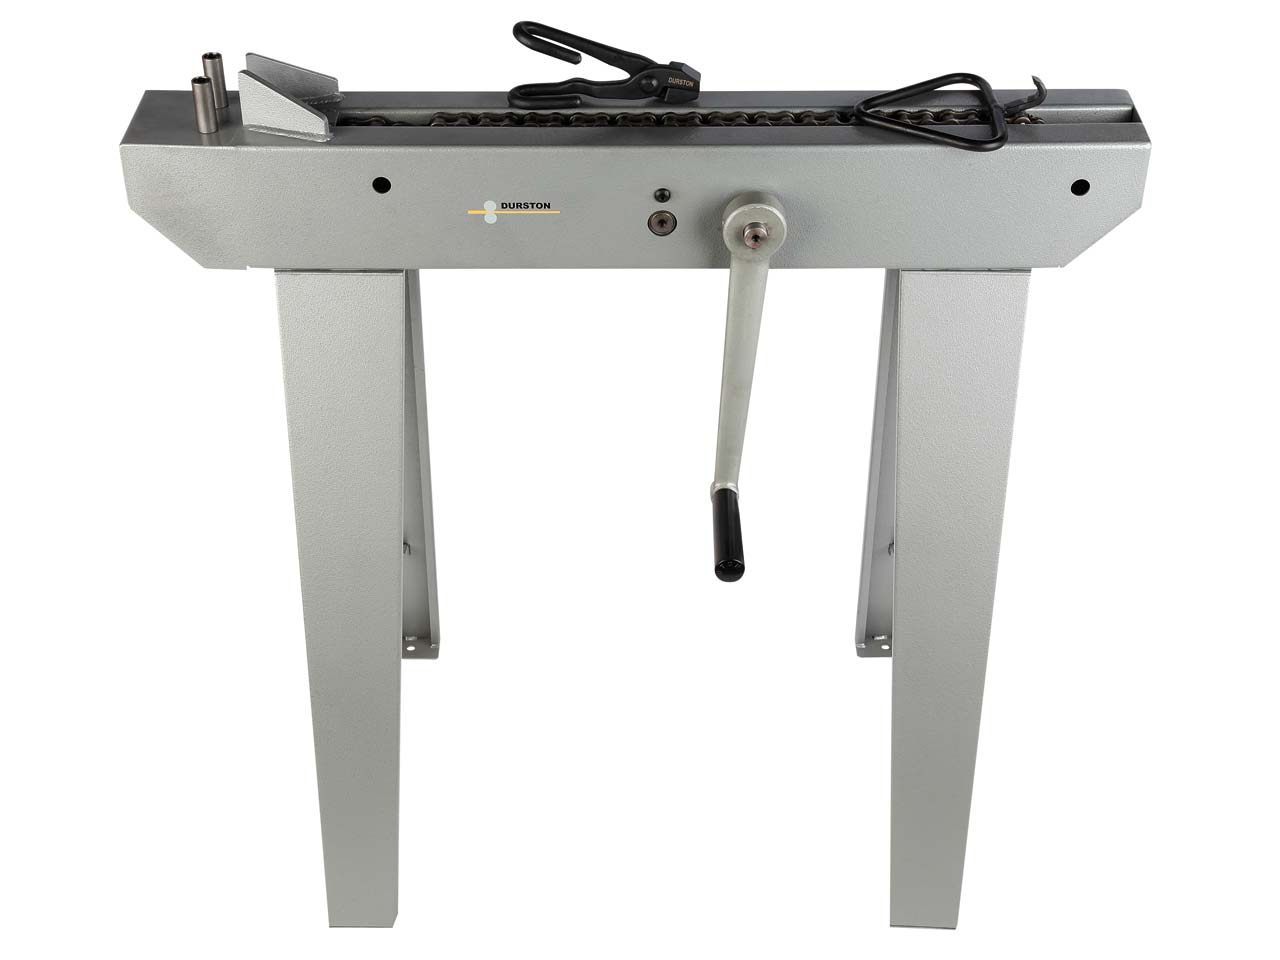 Durston Beginner Drawbench 1100mm